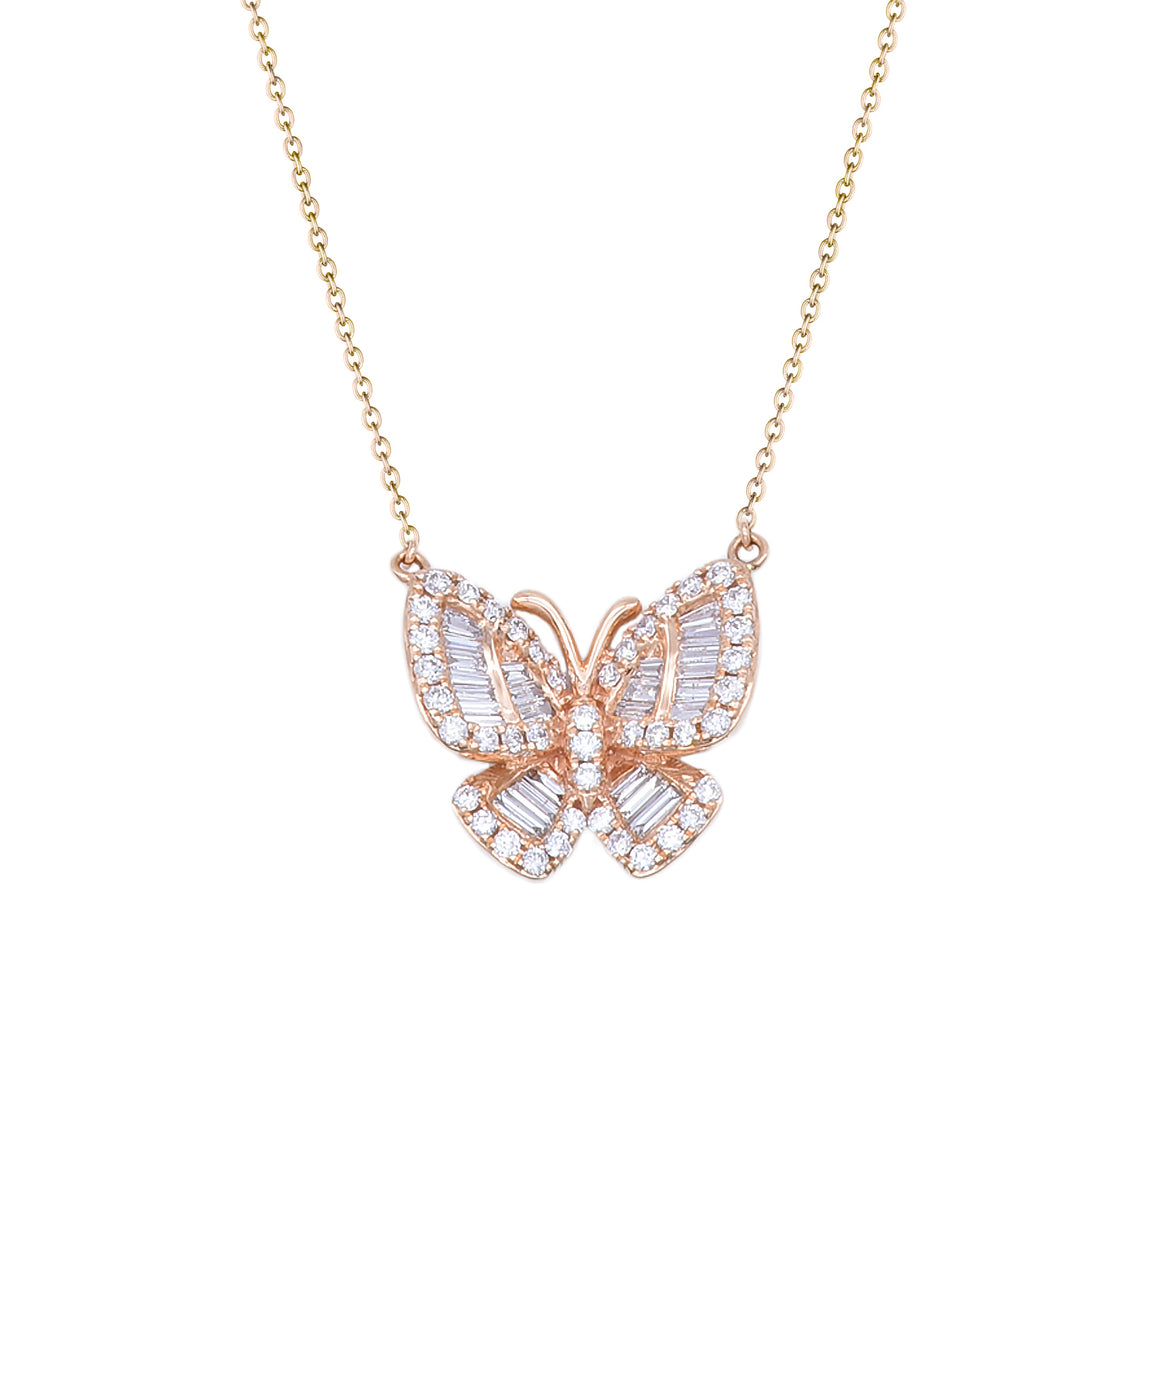 Diamond Baguette Butterfly Necklace - Lesley Ann Jewels